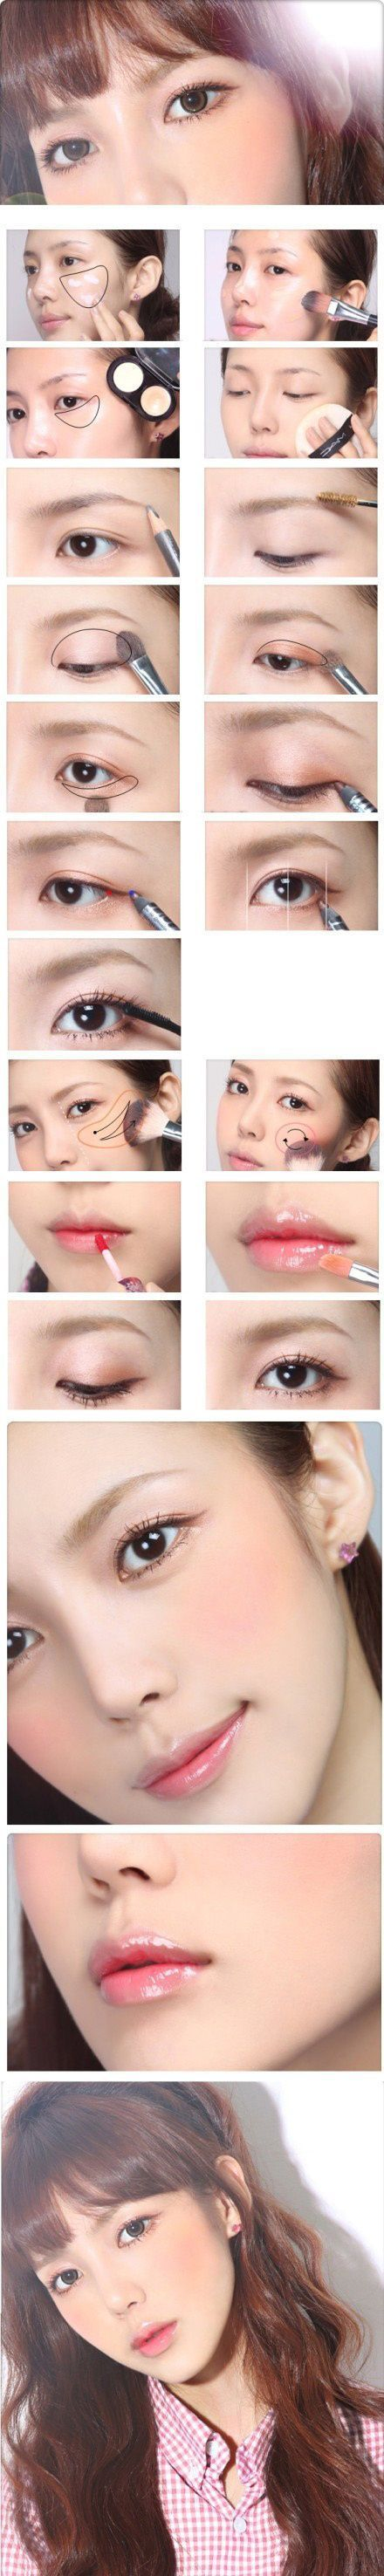 Cosplay Makeup Tutorial · Cosplayer's Guide to Flawless Skin With Make Up …